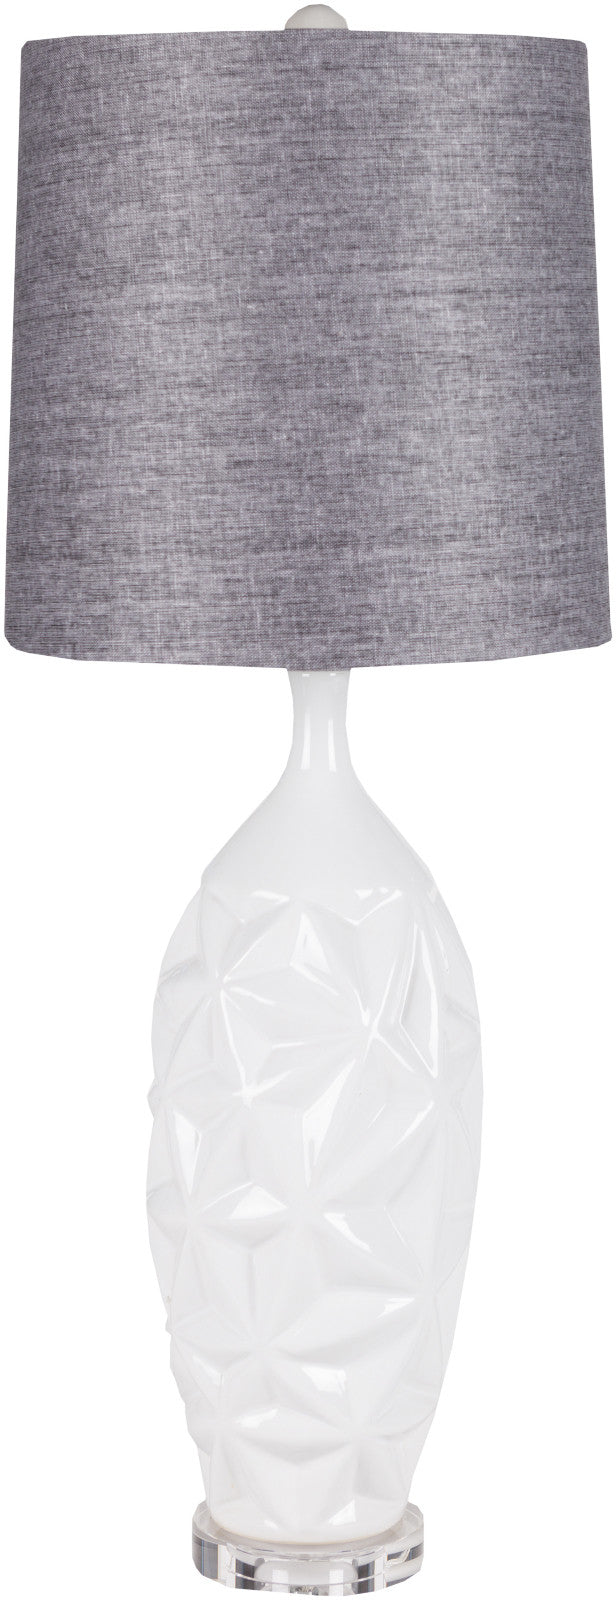 Surya Ceramic LMP-1058 Lamp